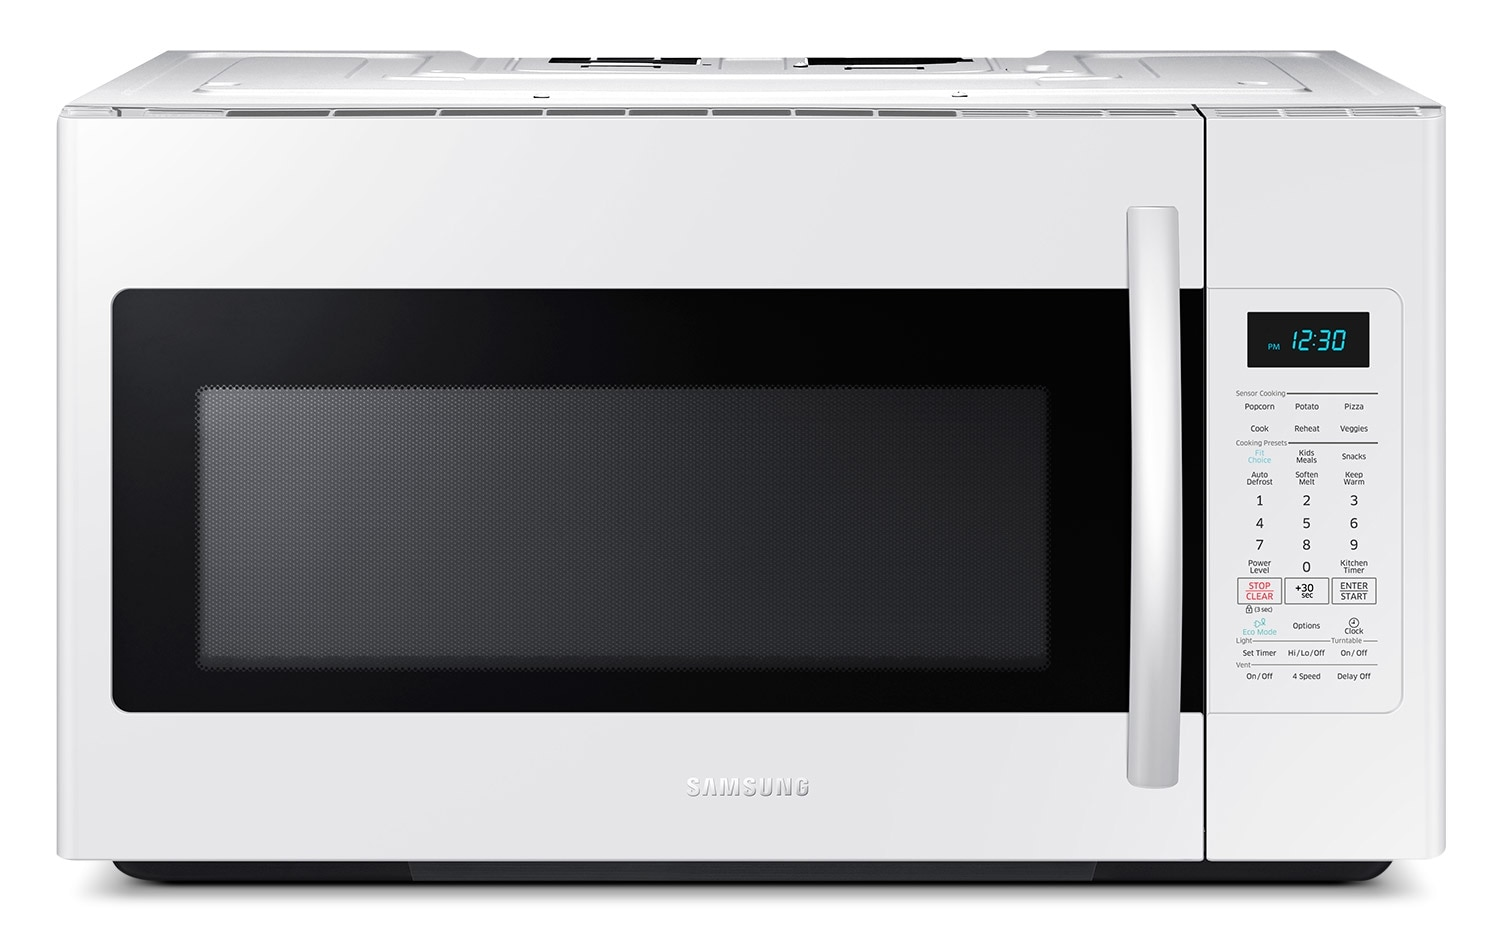 [Samsung White Over-the-Range Microwave (1.8 Cu. Ft.) - ME18H704SFW/AC]